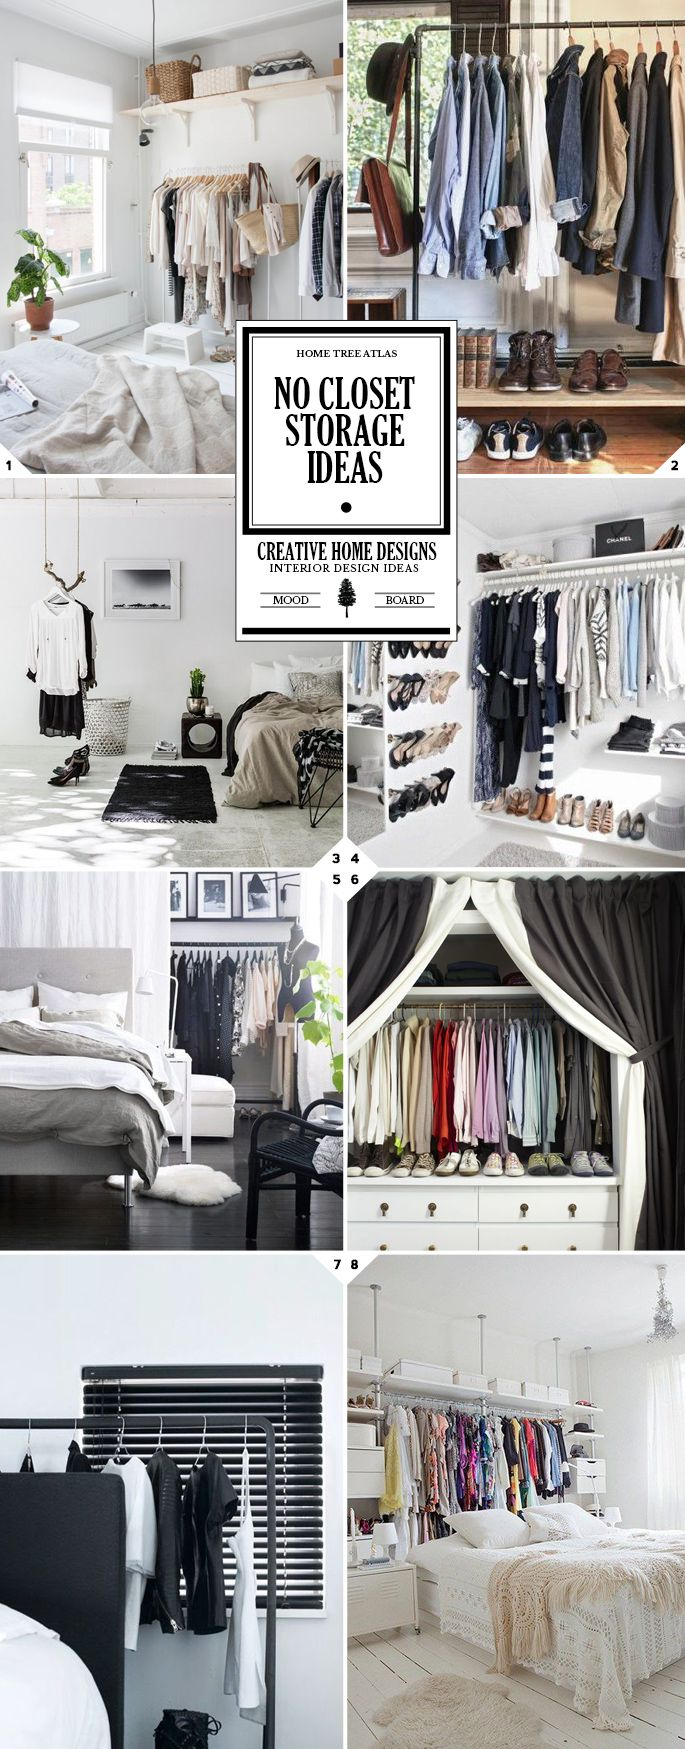 living room closet ideas. Getting Creative  No Closet Solutions and Storage Ideas Best 25 Open closets ideas on Pinterest Stylish bedroom